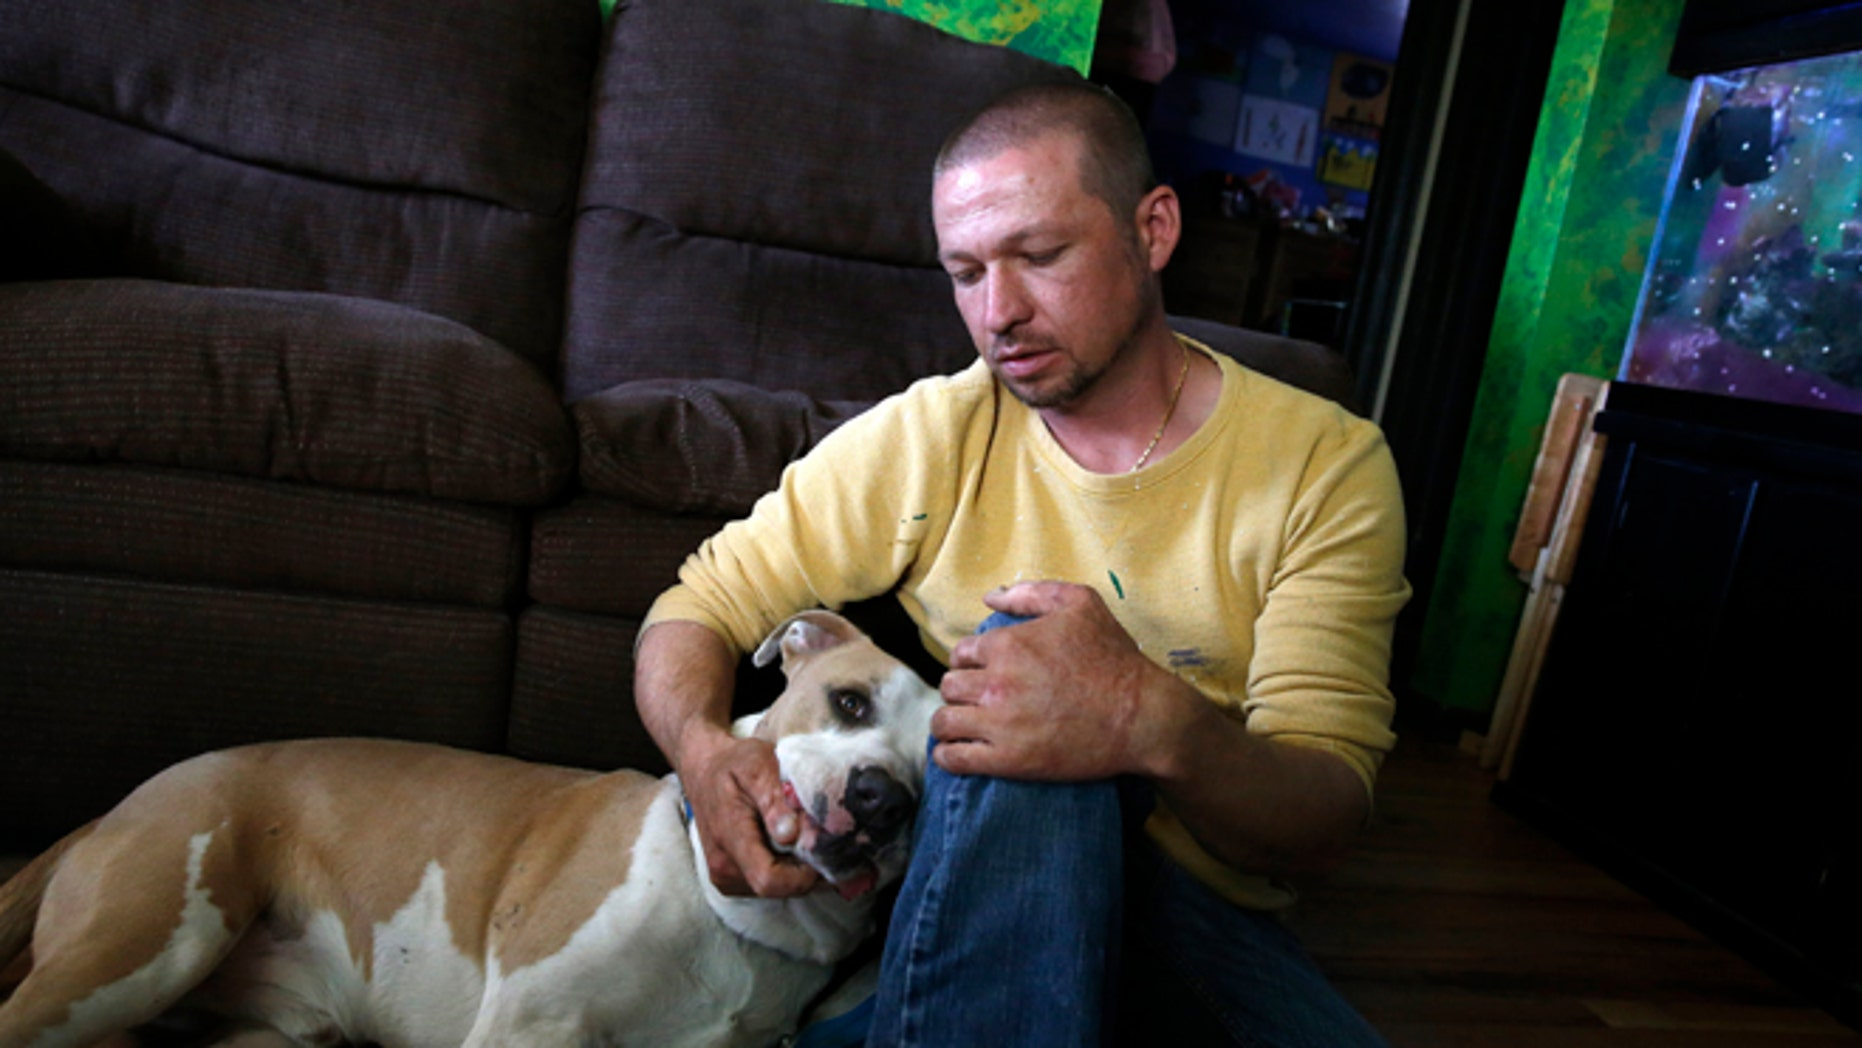 Wayne Winkler, who suffered burns to 12 percent of his body when butane fumes ignited while he was making hash oil at home, pets his dog Bailey, in his living room, in Denver, May 1, 2014. Winkler agreed to talk to The Associated Press to send a message that making hash oil at home is highly dangerous. Since marijuana became legal on Jan. 1, the state has seen nearly three dozen explosions caused by people making pot concentrates at home, and authorities are grappling with what to do about it. (AP/Brennan Linsley)